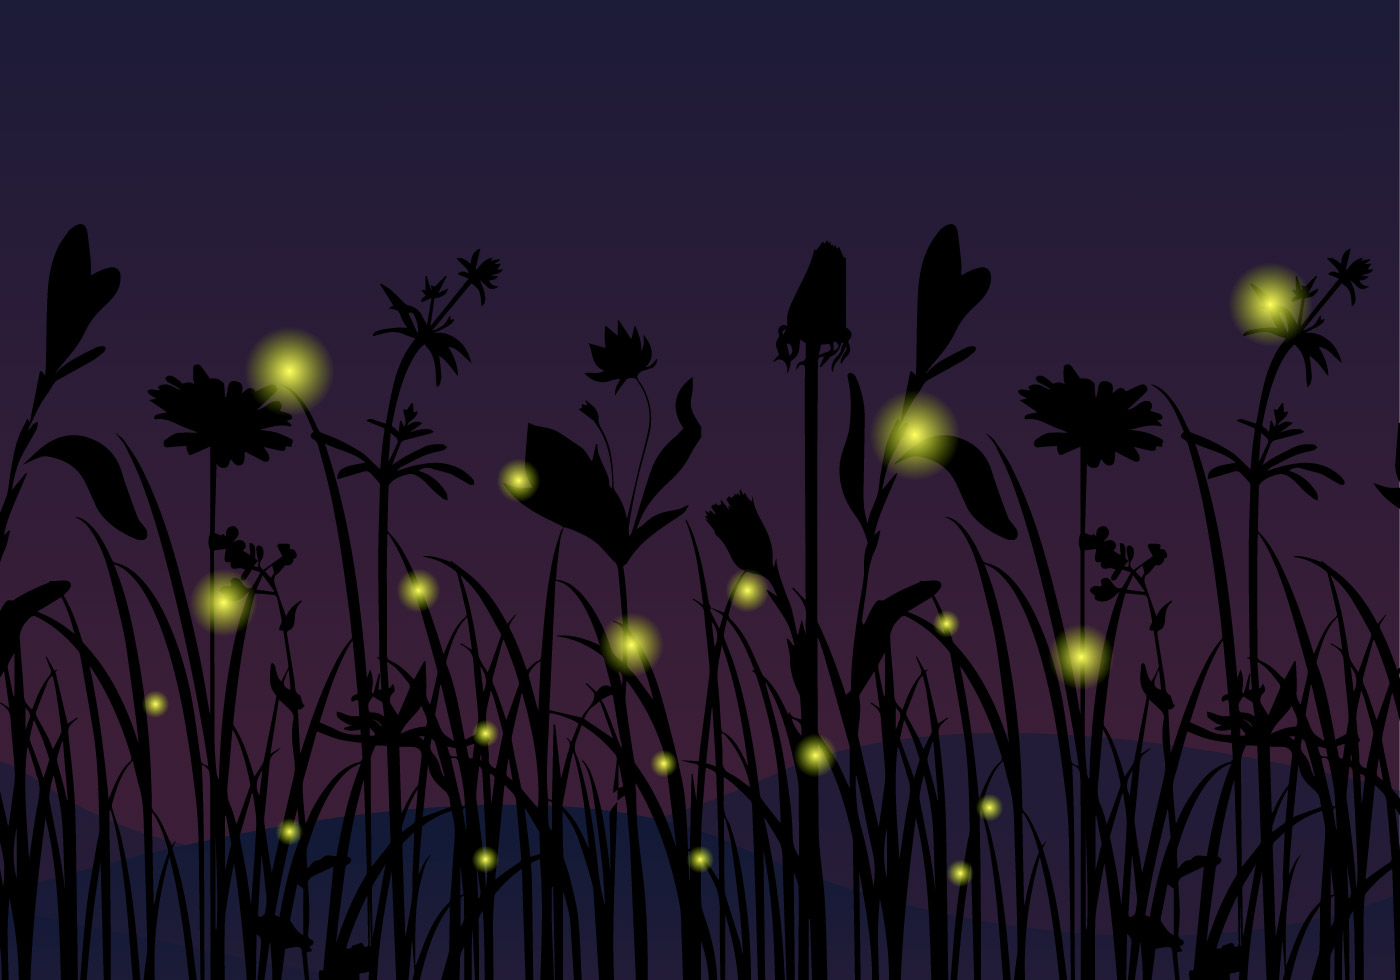 Firefly Vector - Download Free Vector Art, Stock Graphics & Images